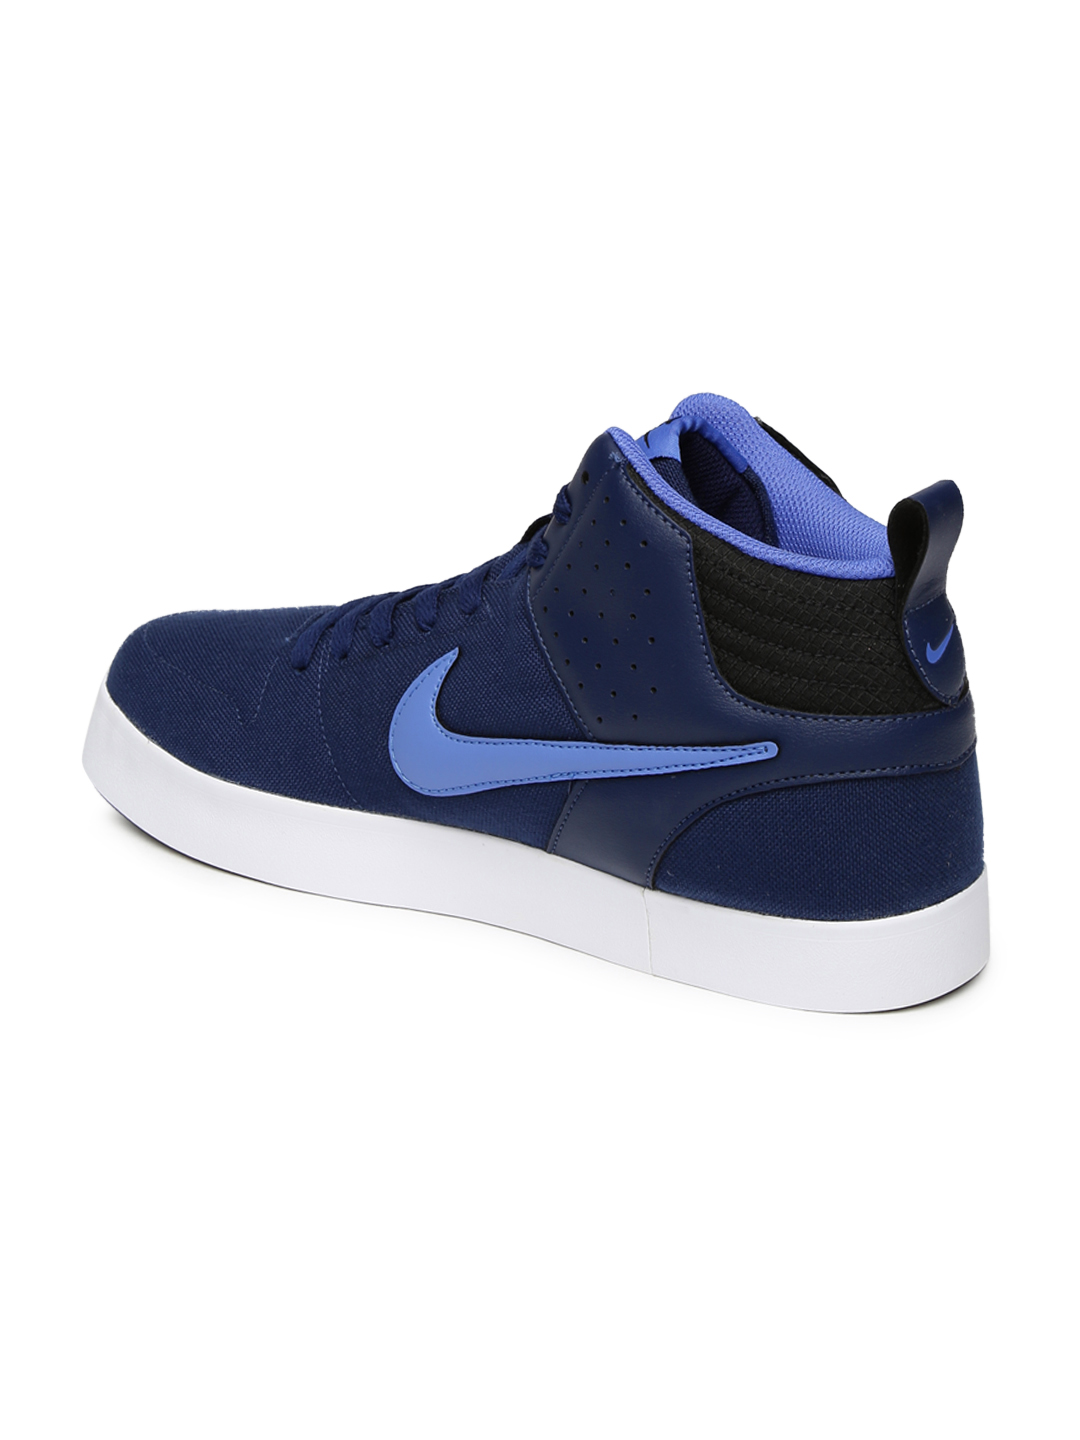 Best Nike Or Adidas Casual Shoes